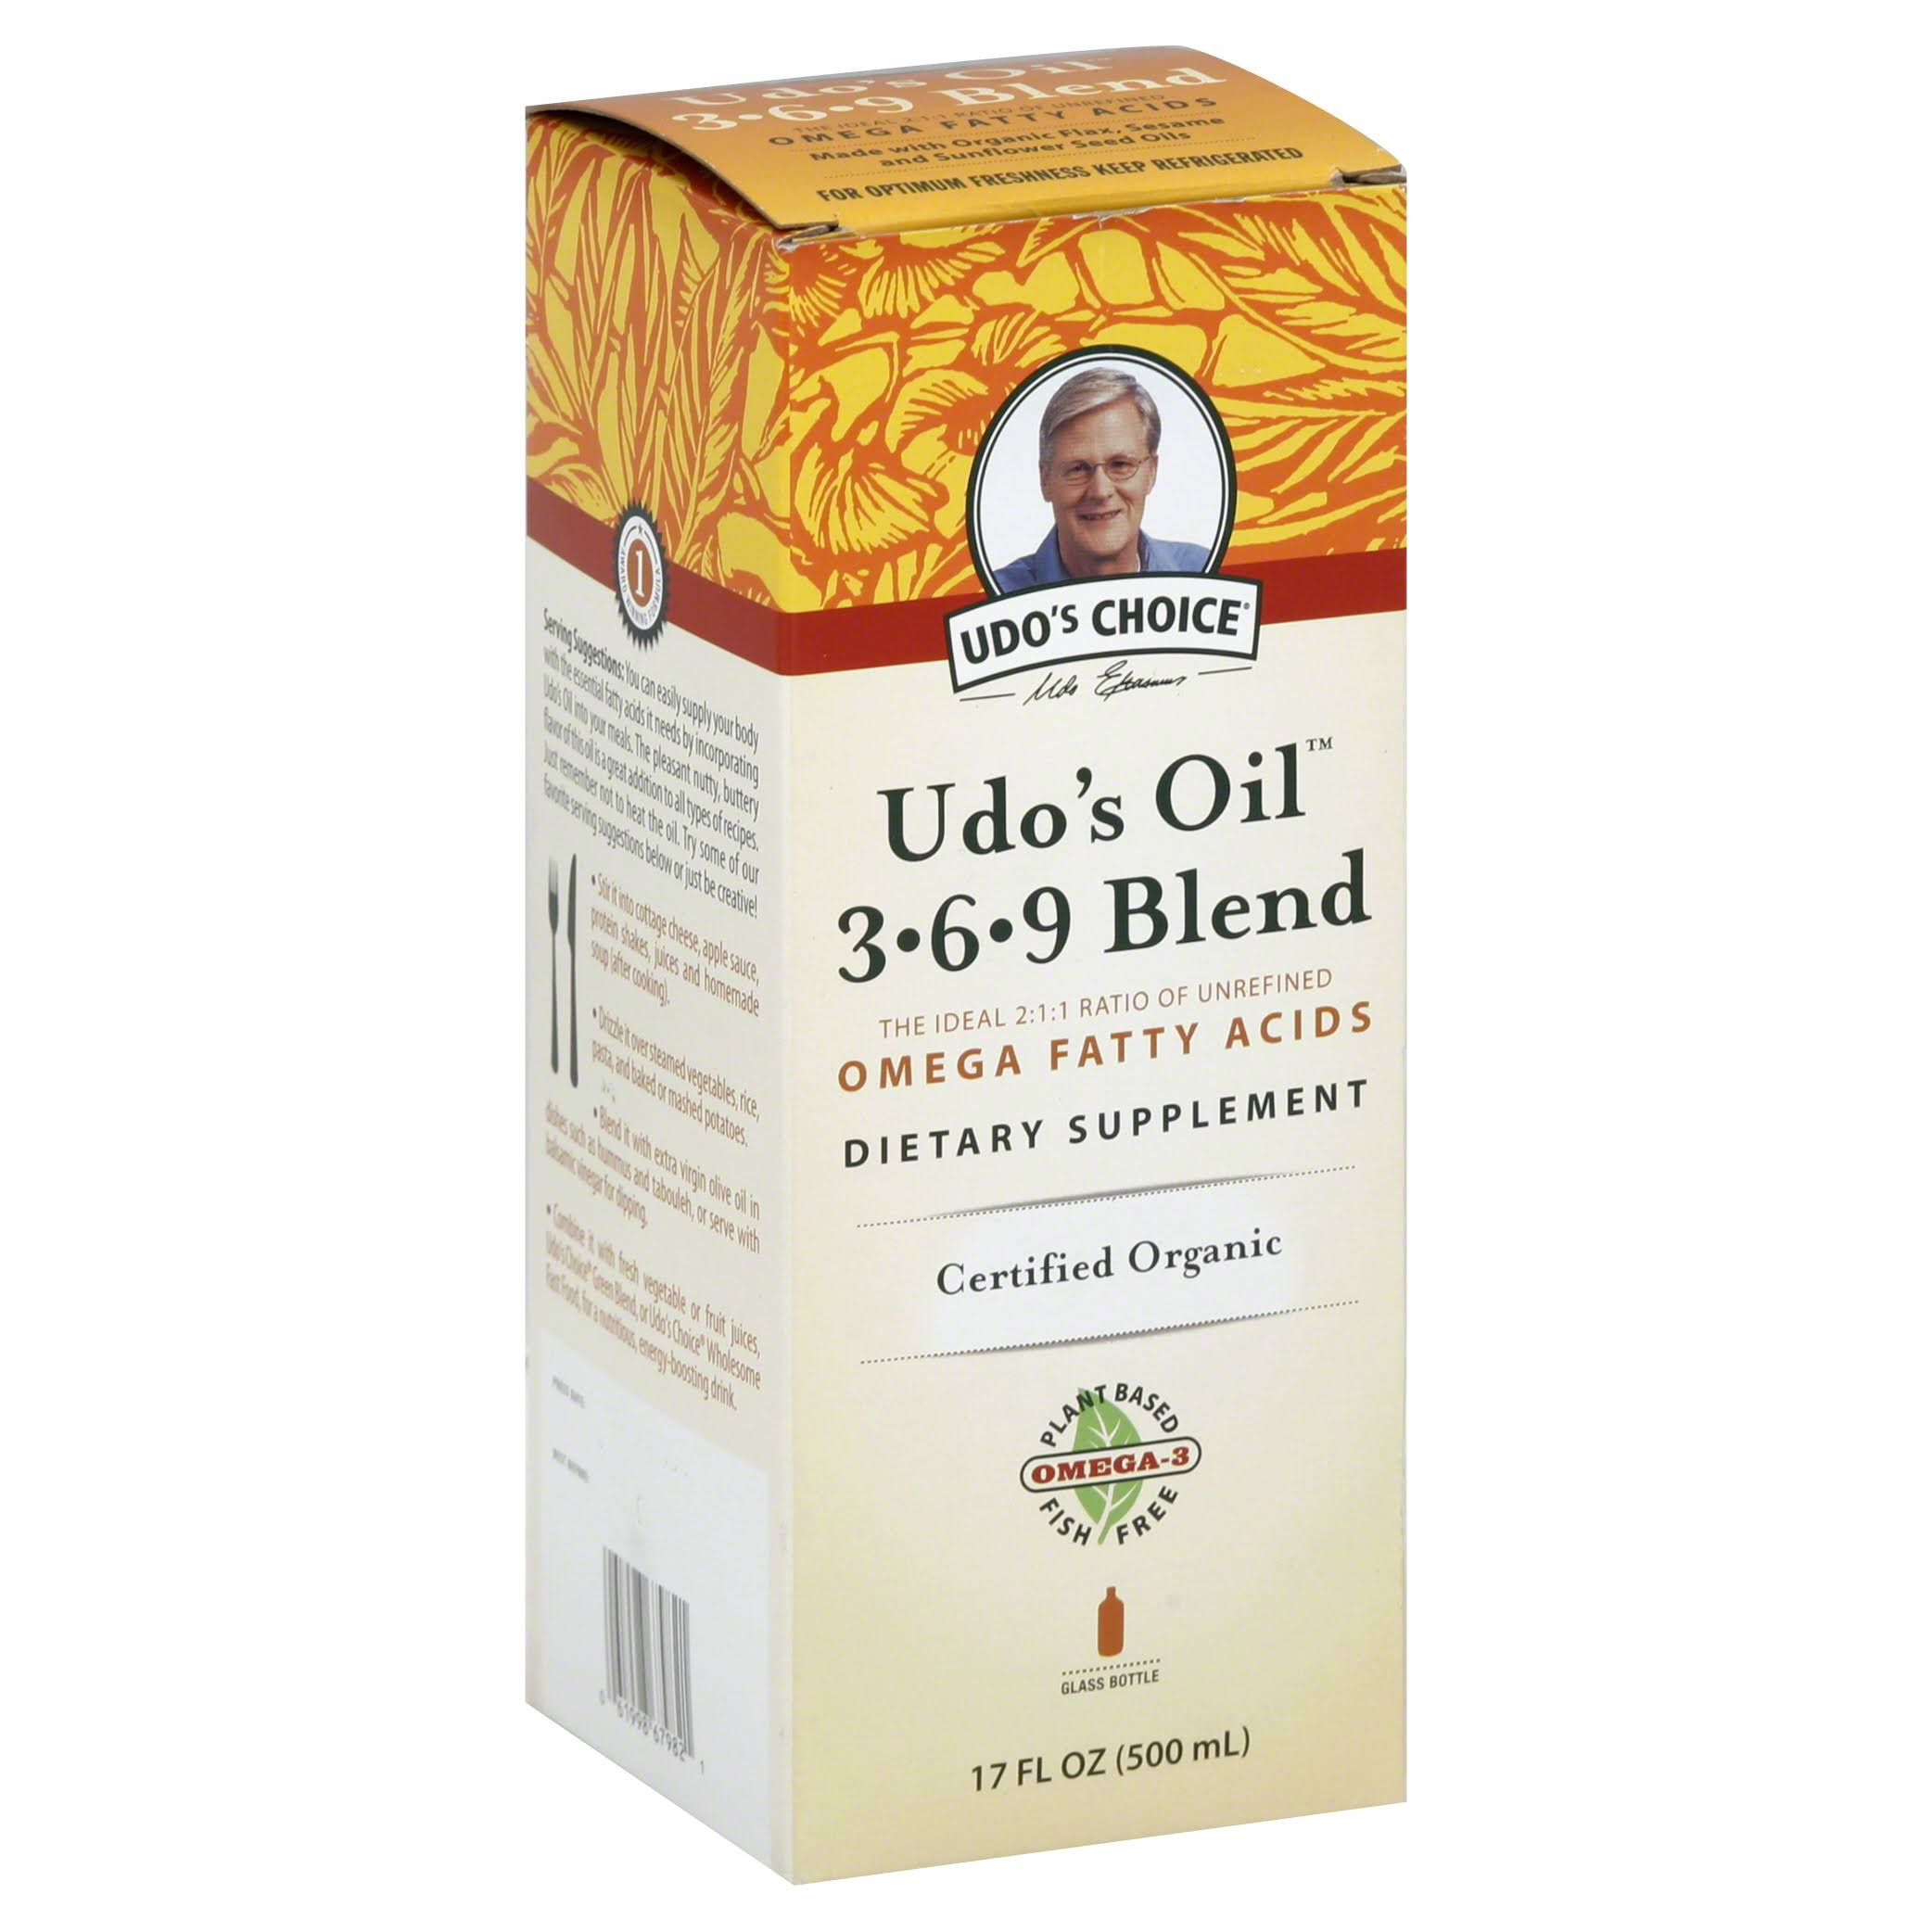 Udo's Choice Oil 3-6-9 Blend - 500ml